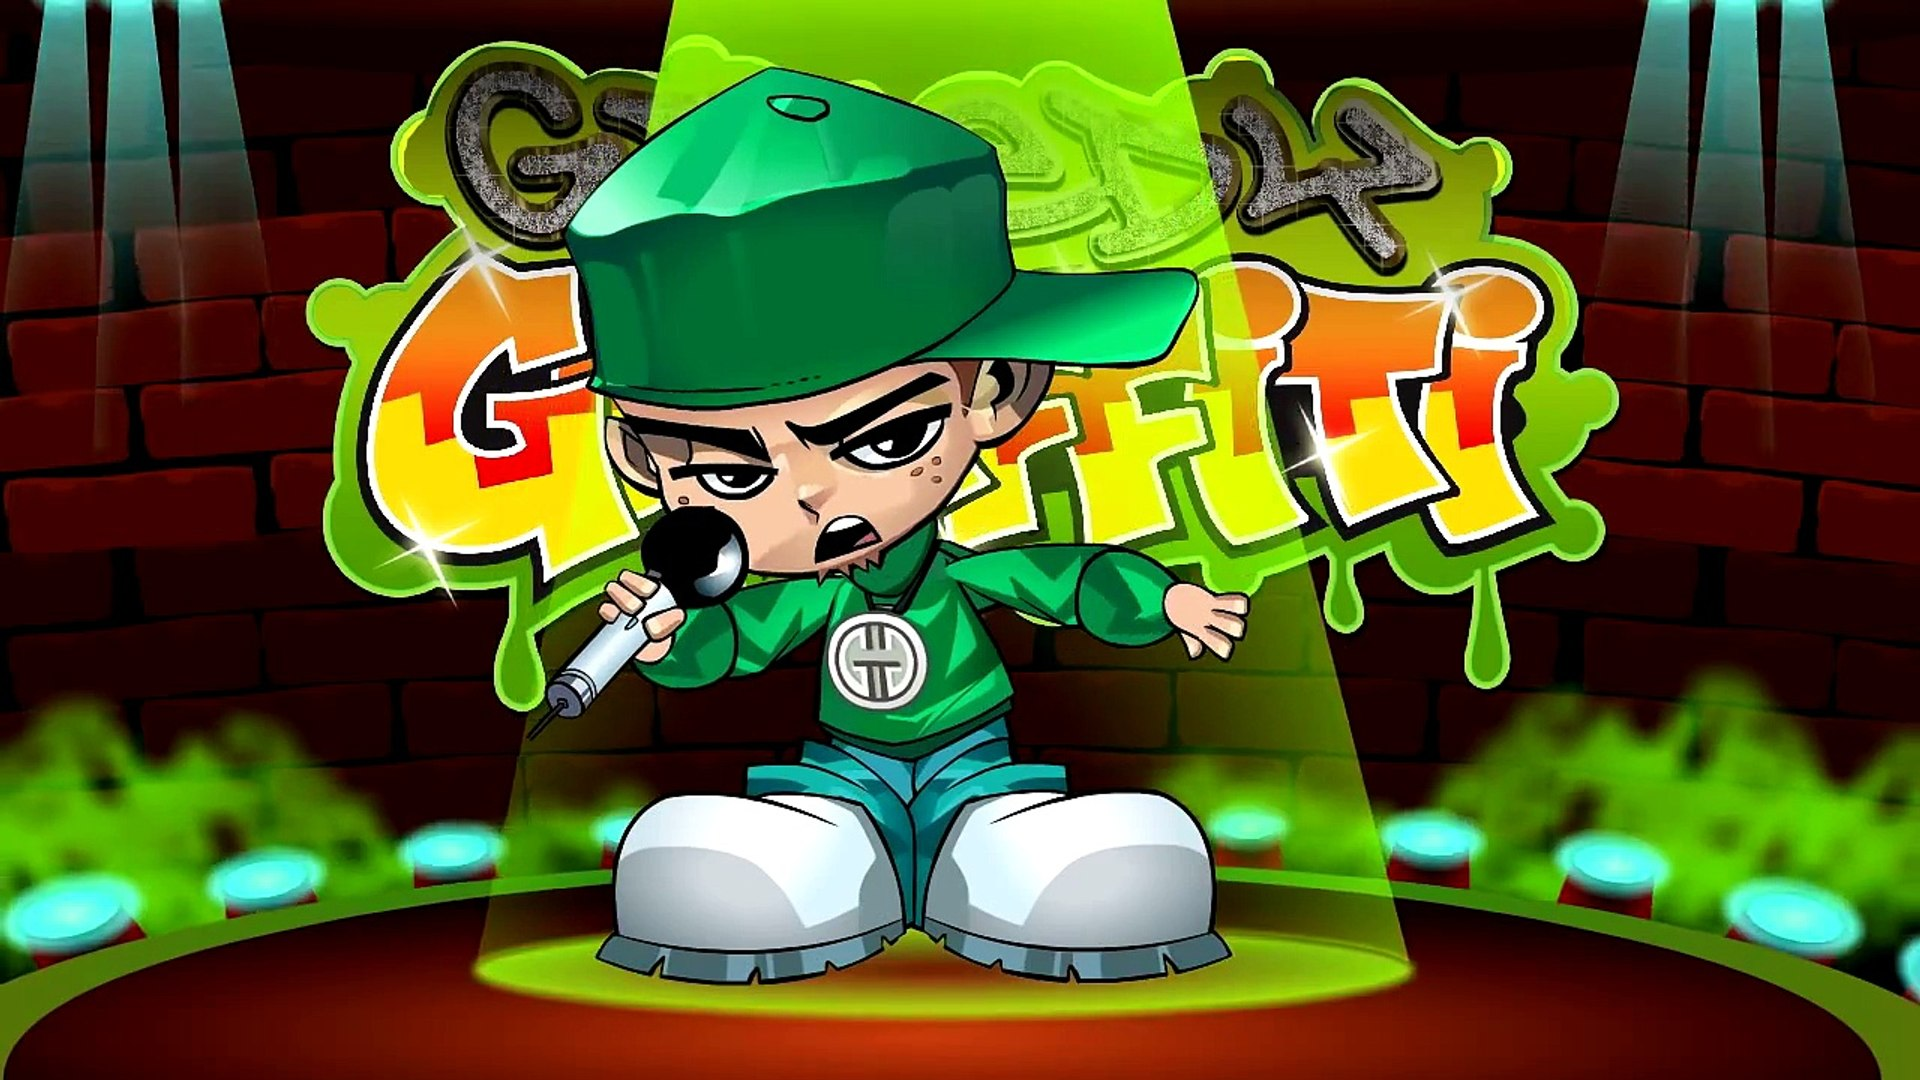 Funny song - MUFFIN TOPS - animated rap music video parody by comedy rapper Greedy Graffiti